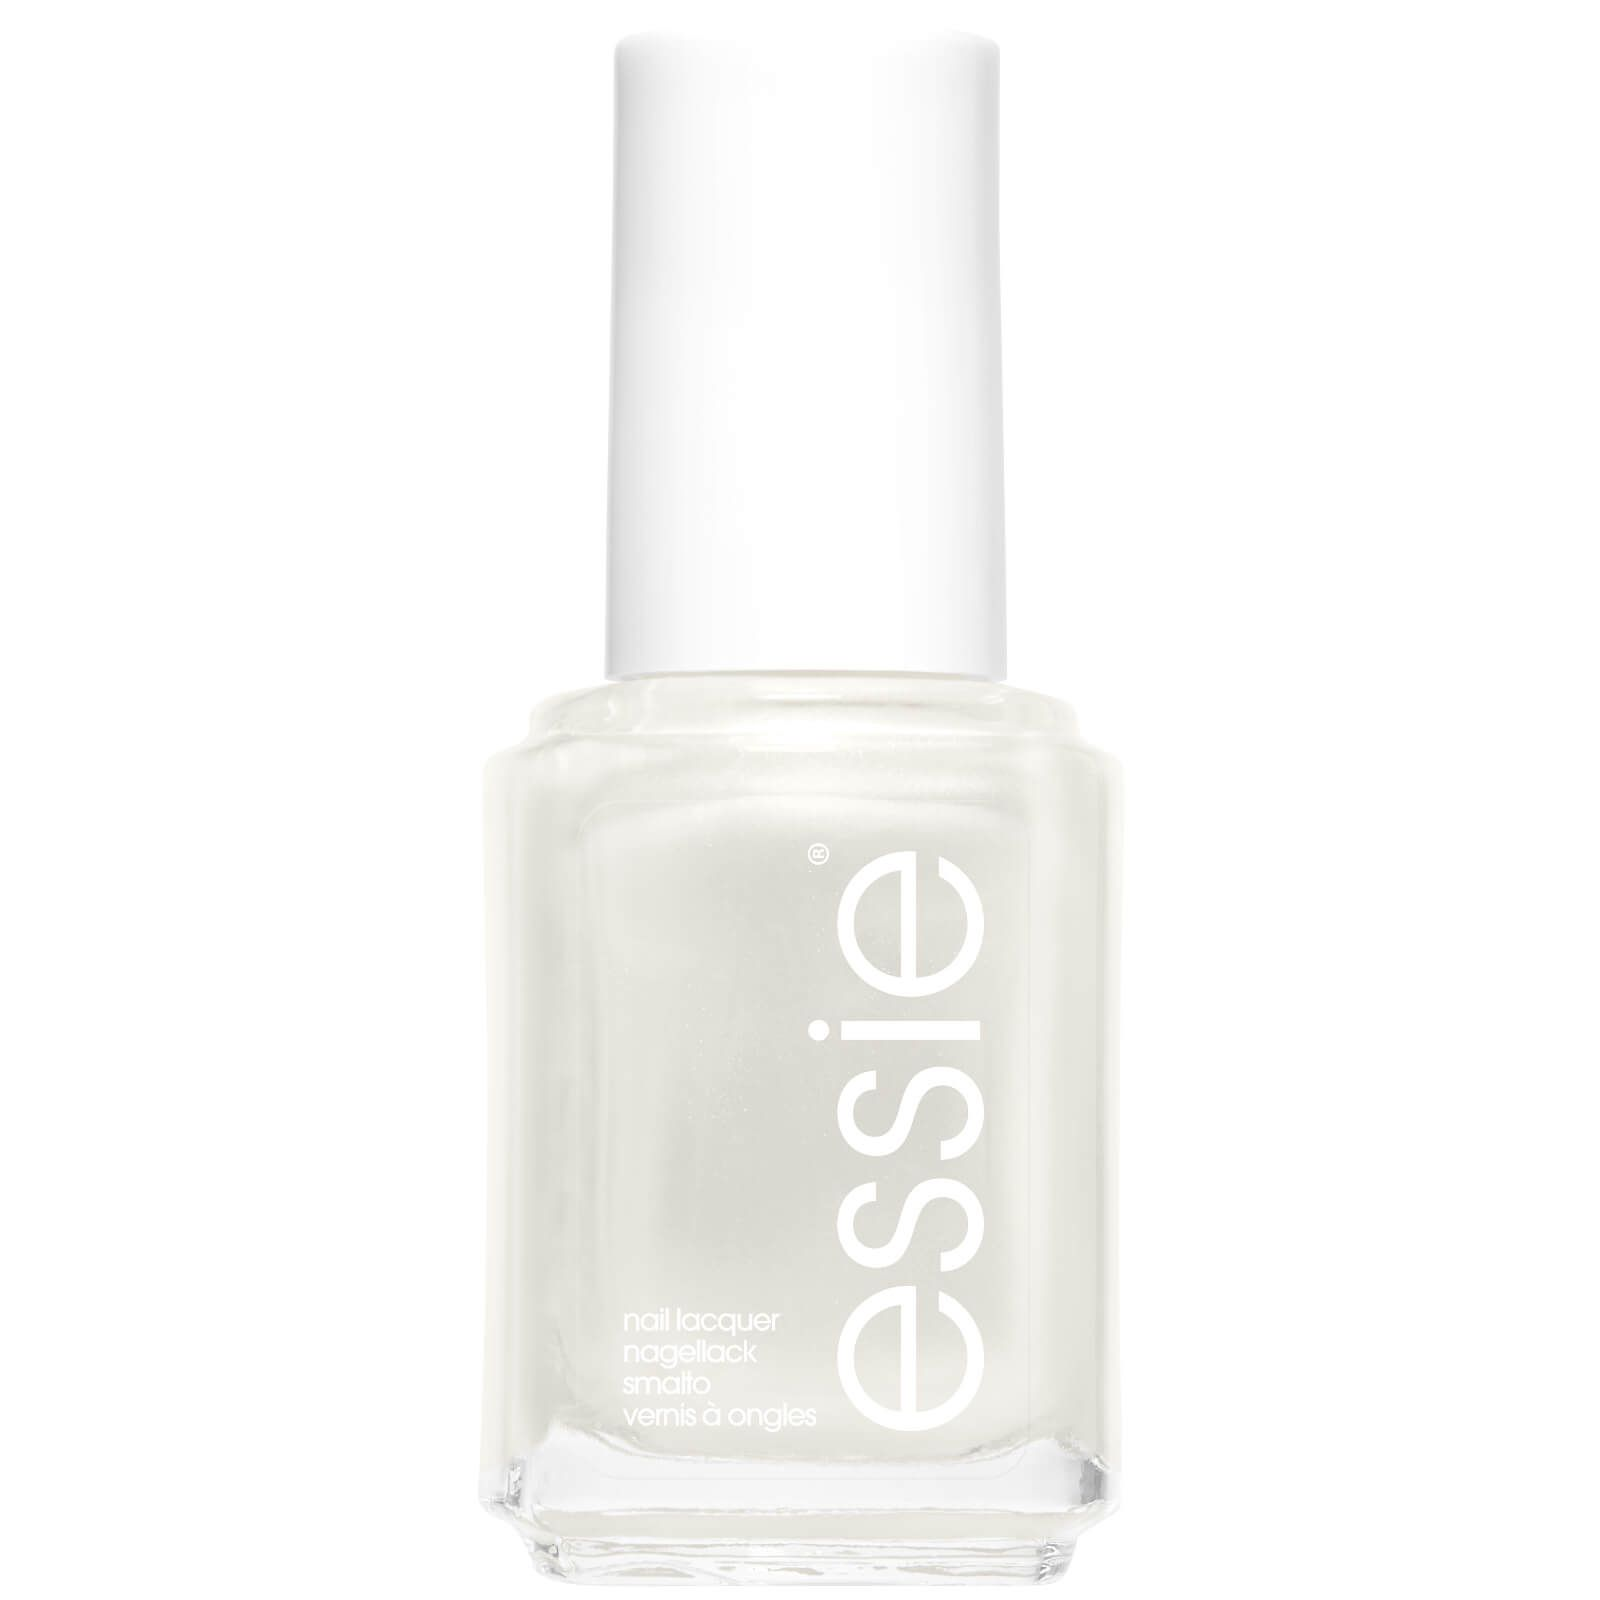 My Celebrity Life – Essie 4 Pearly White Shimmer Nail Polish